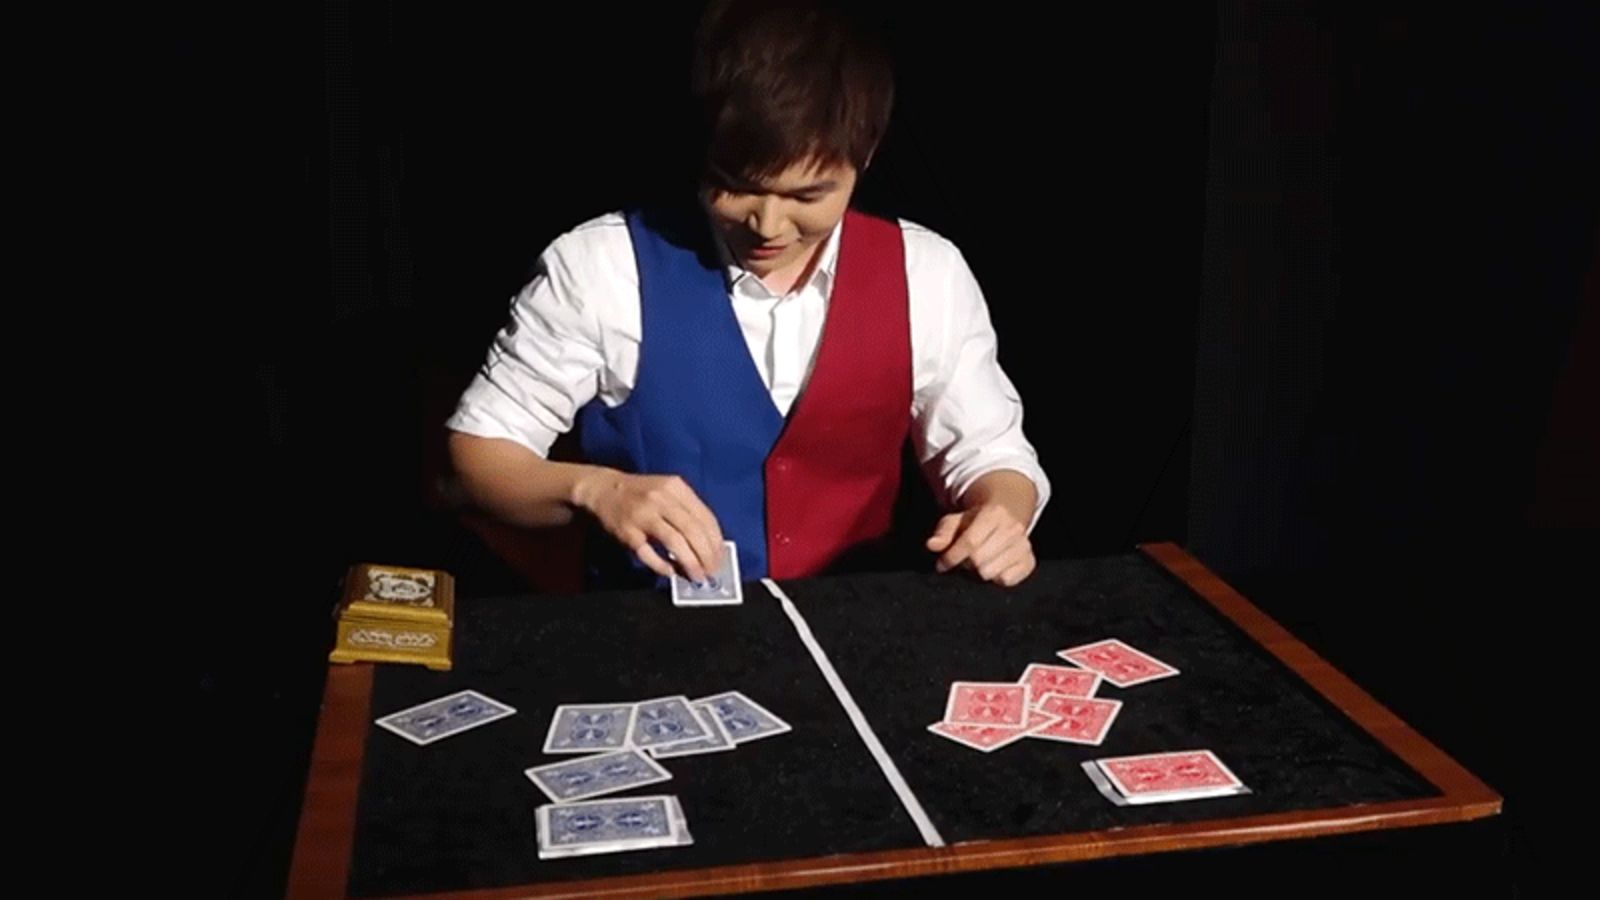 This Is The Mind-Blowing Winning Trick At The World Championships of Magic